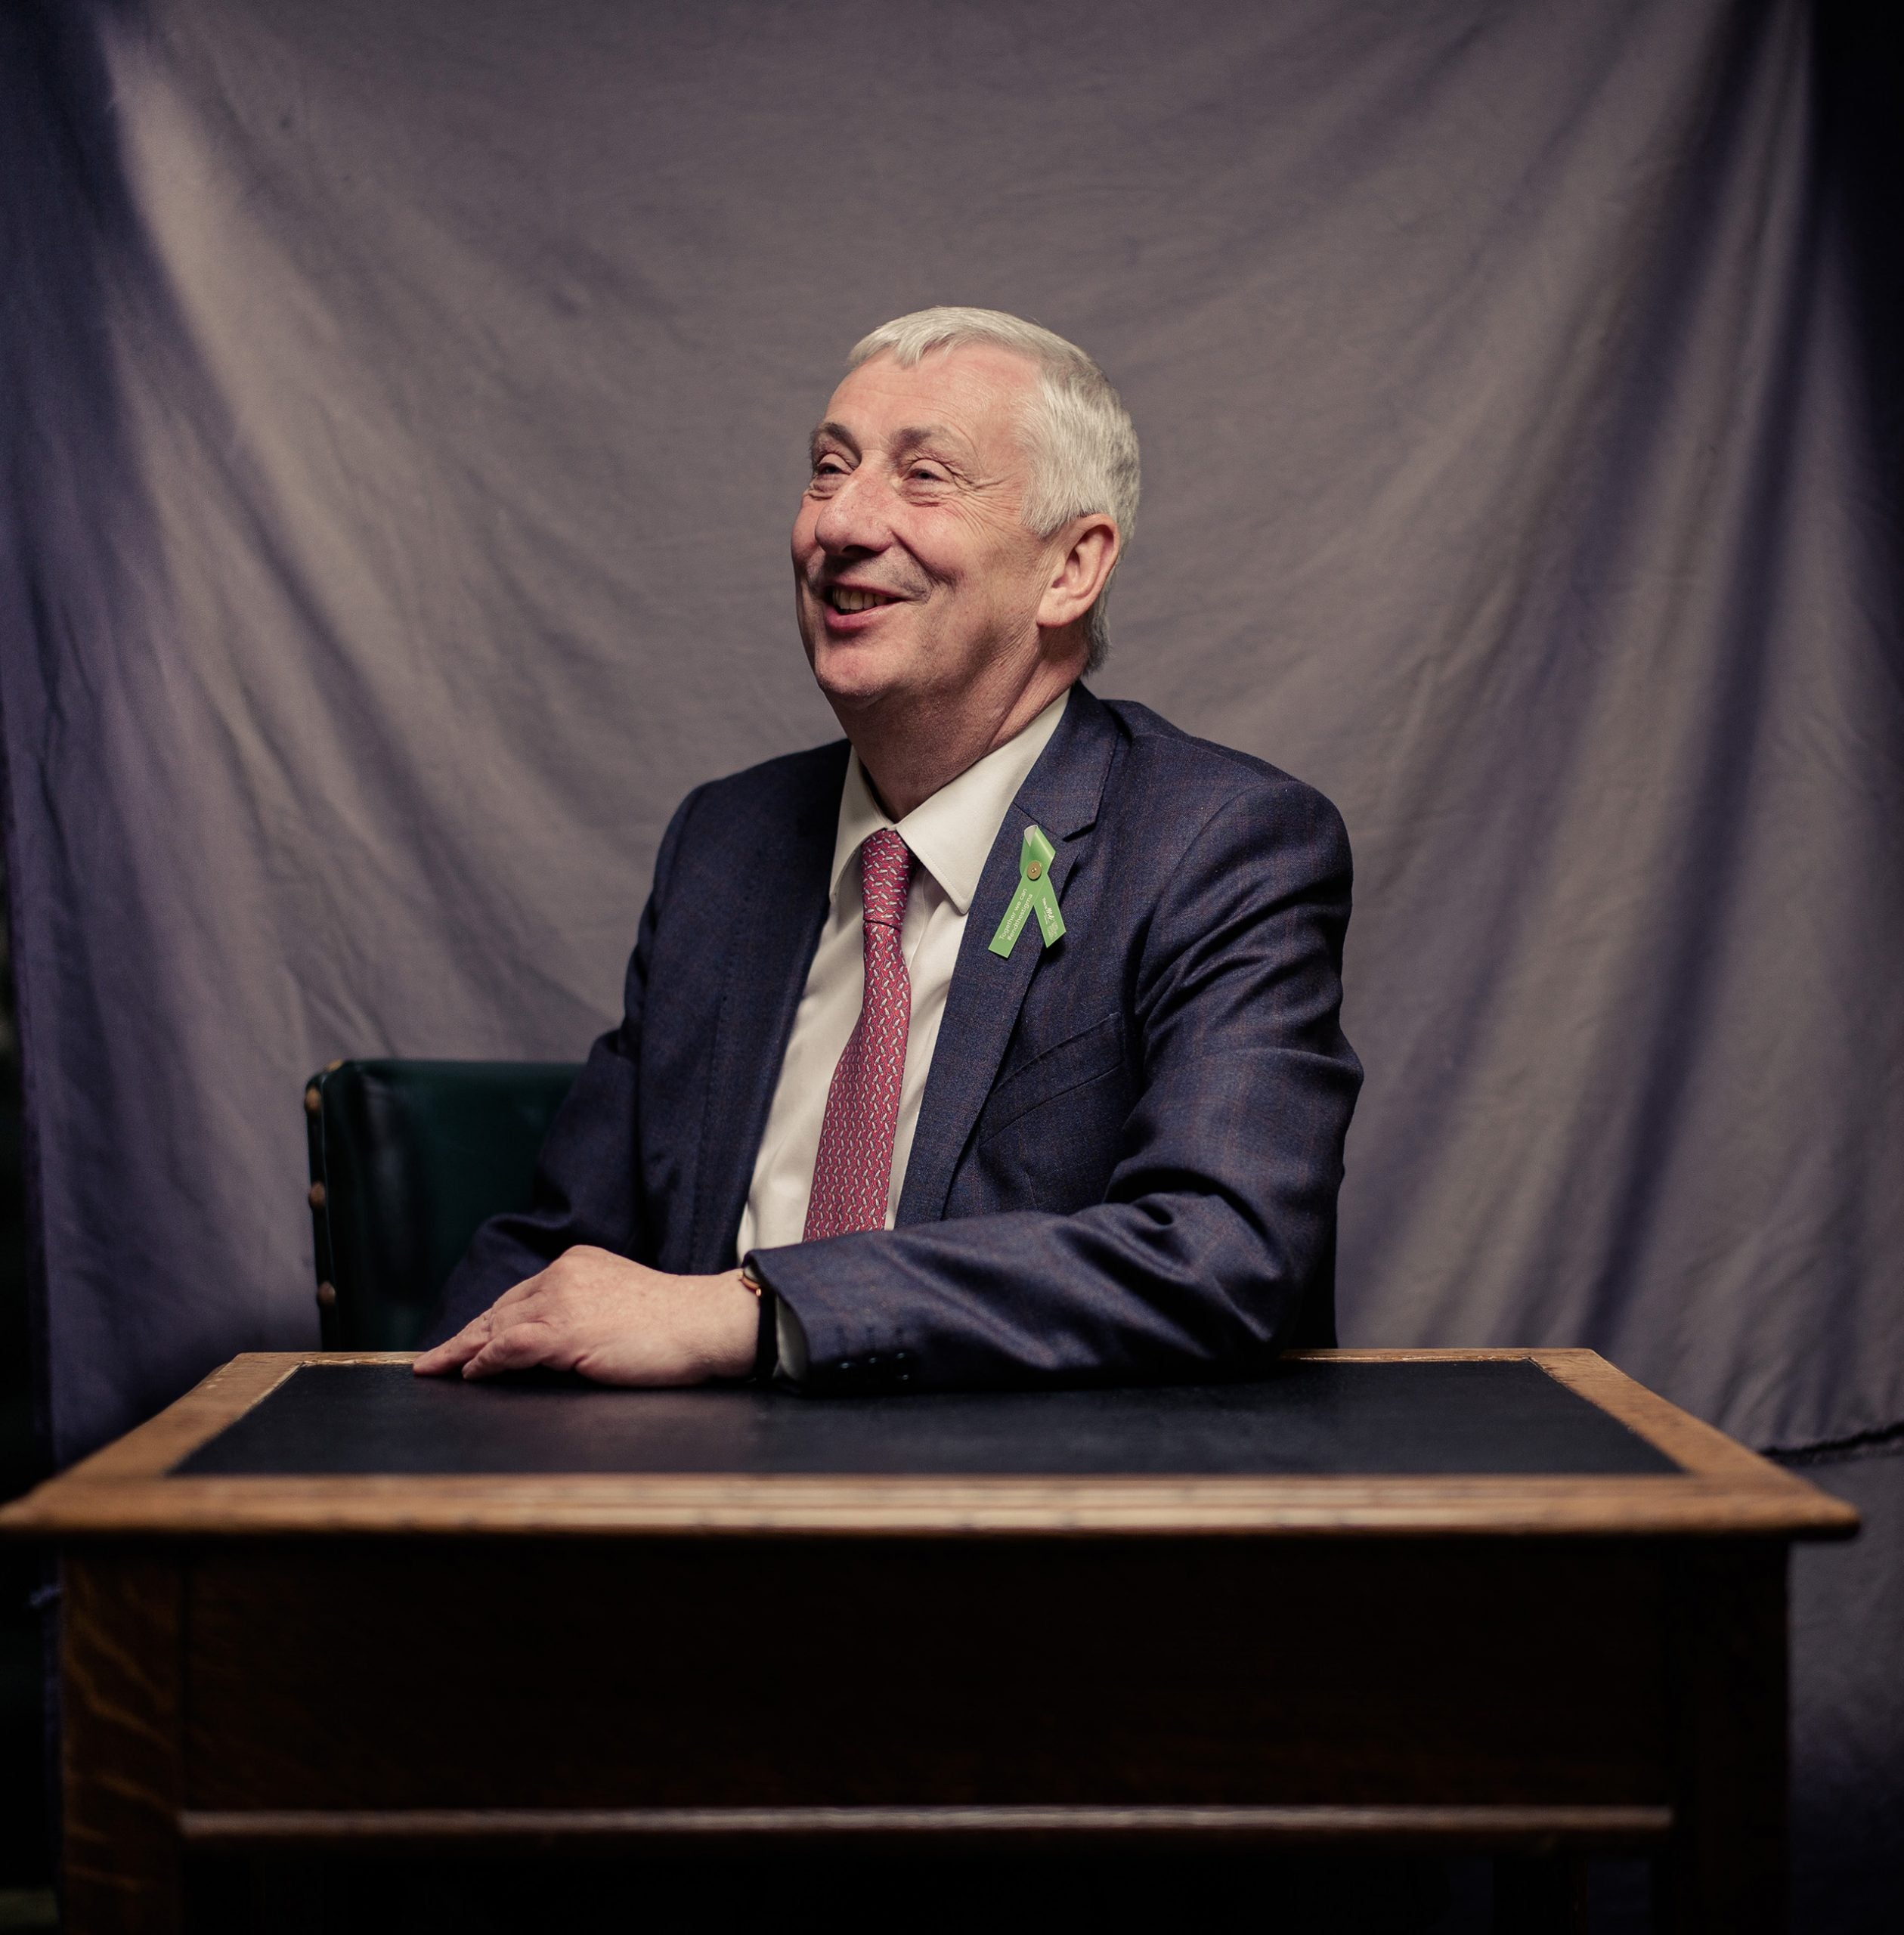 """Lindsay Hoyle: """"Westminster is a tinderbox ready to explode"""""""